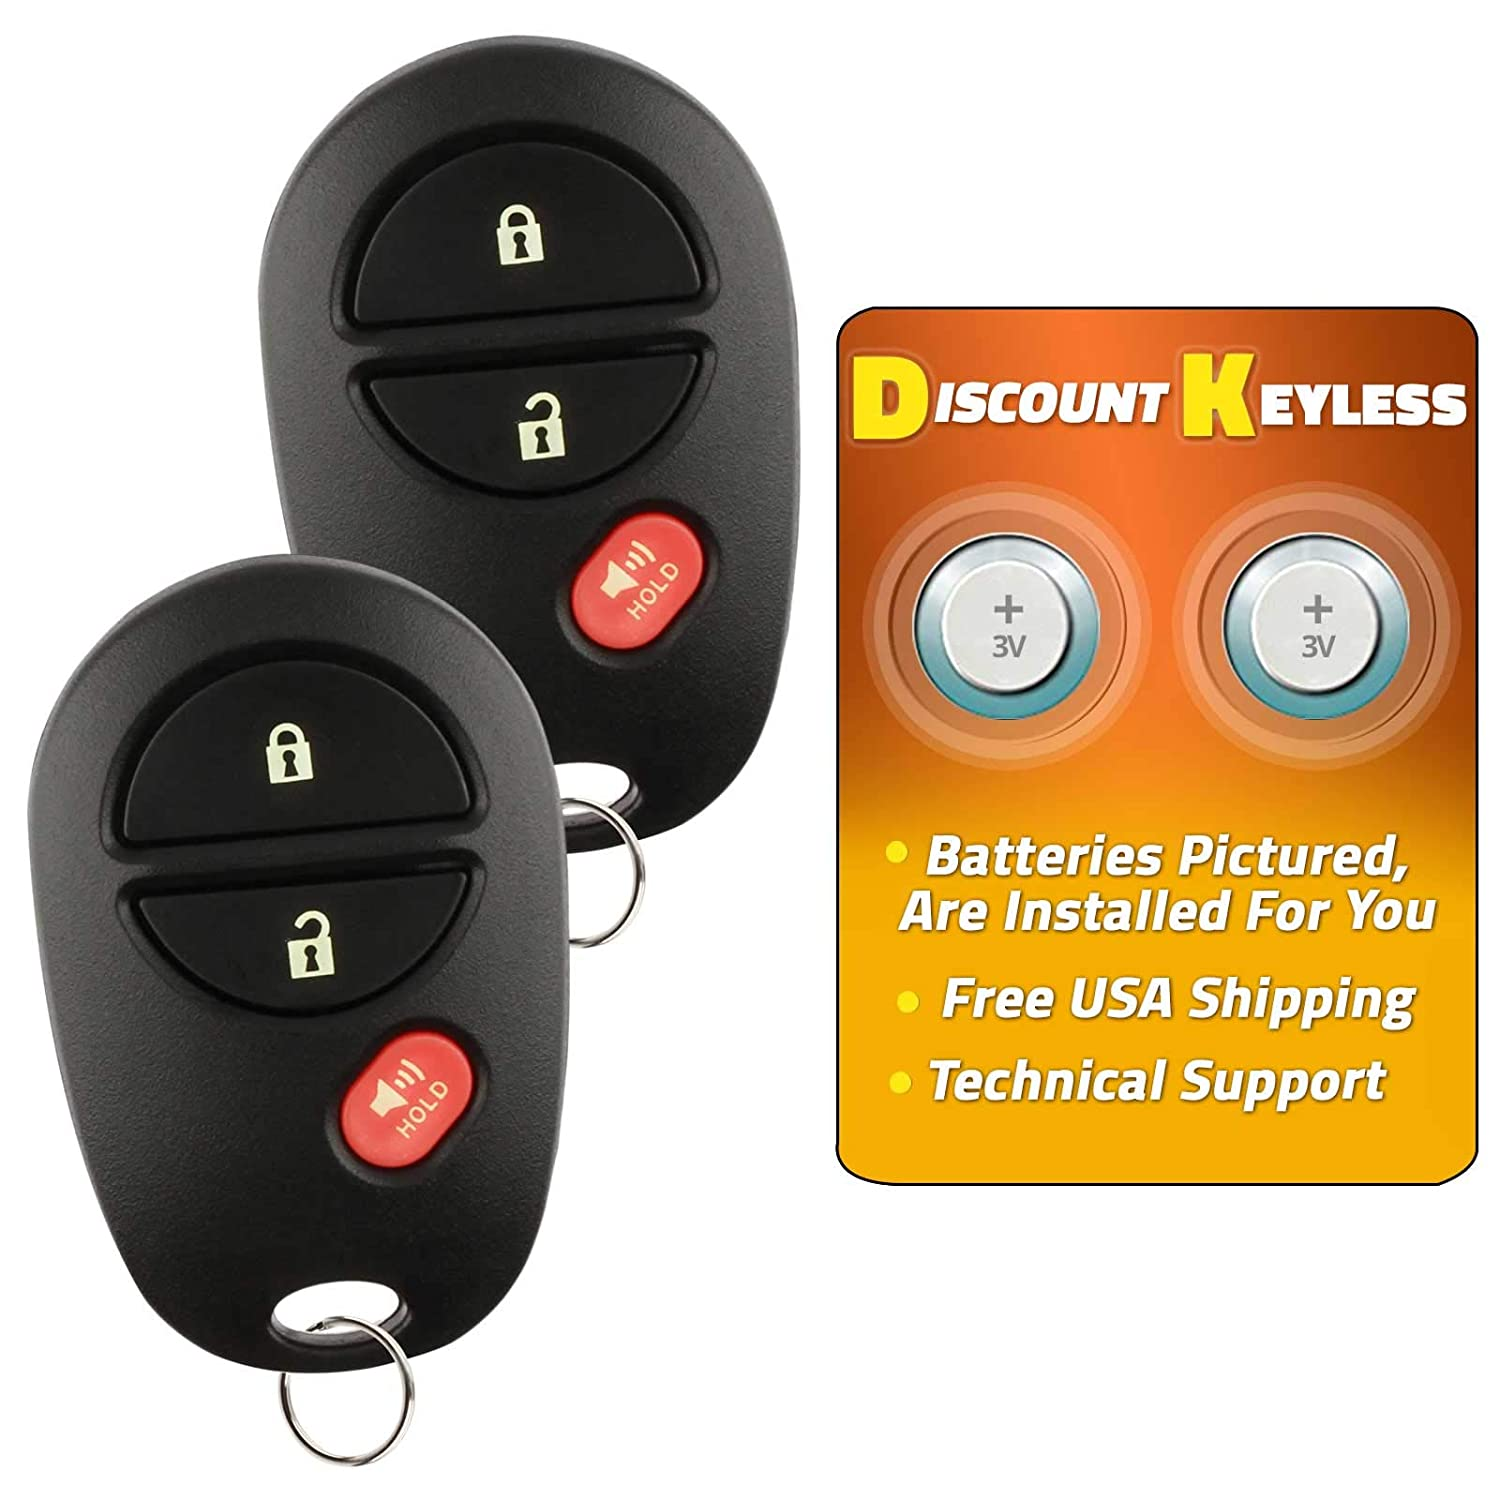 Discount Keyless Replacement Key Fob Car Remote For Toyota Tacoma Tundra  Sequoia Highlander GQ43VT20T